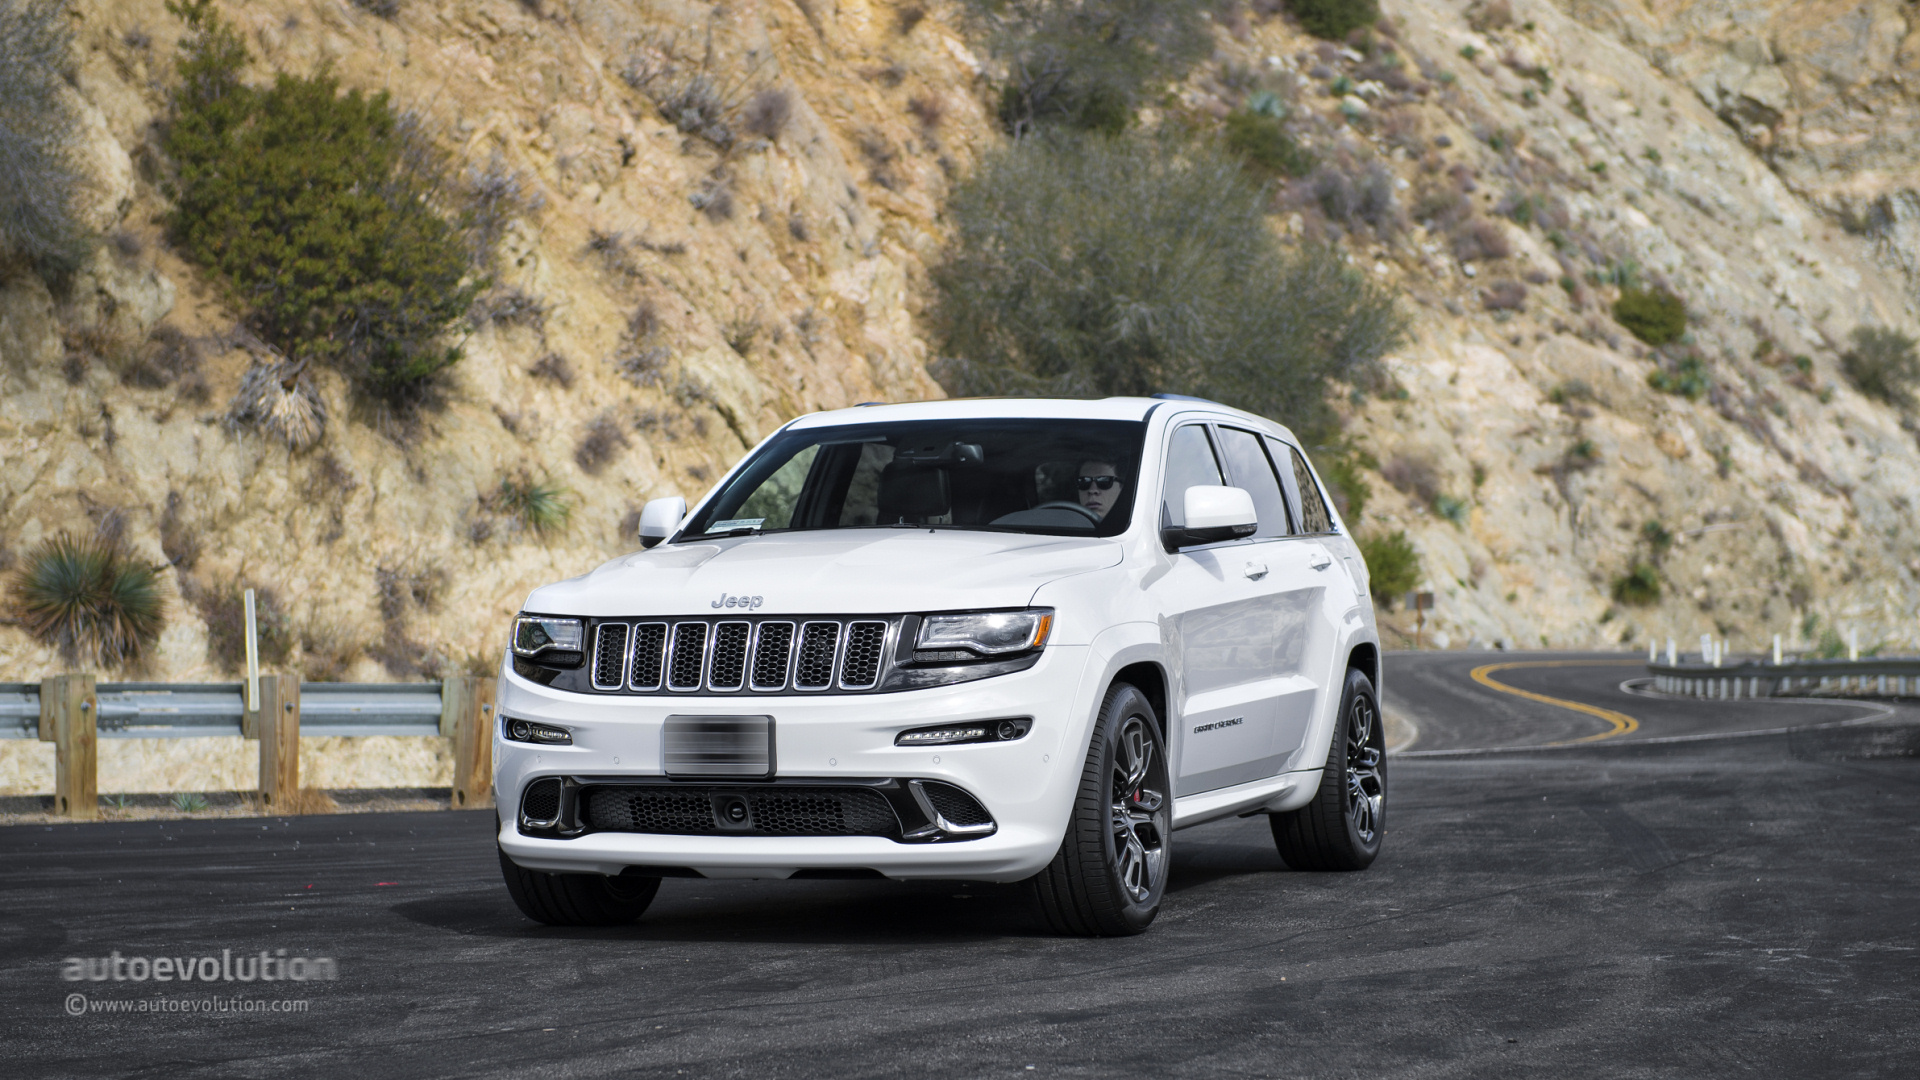 Jeep Grand Cherokee Wallpapers Download 6T5Z731 1920x1080